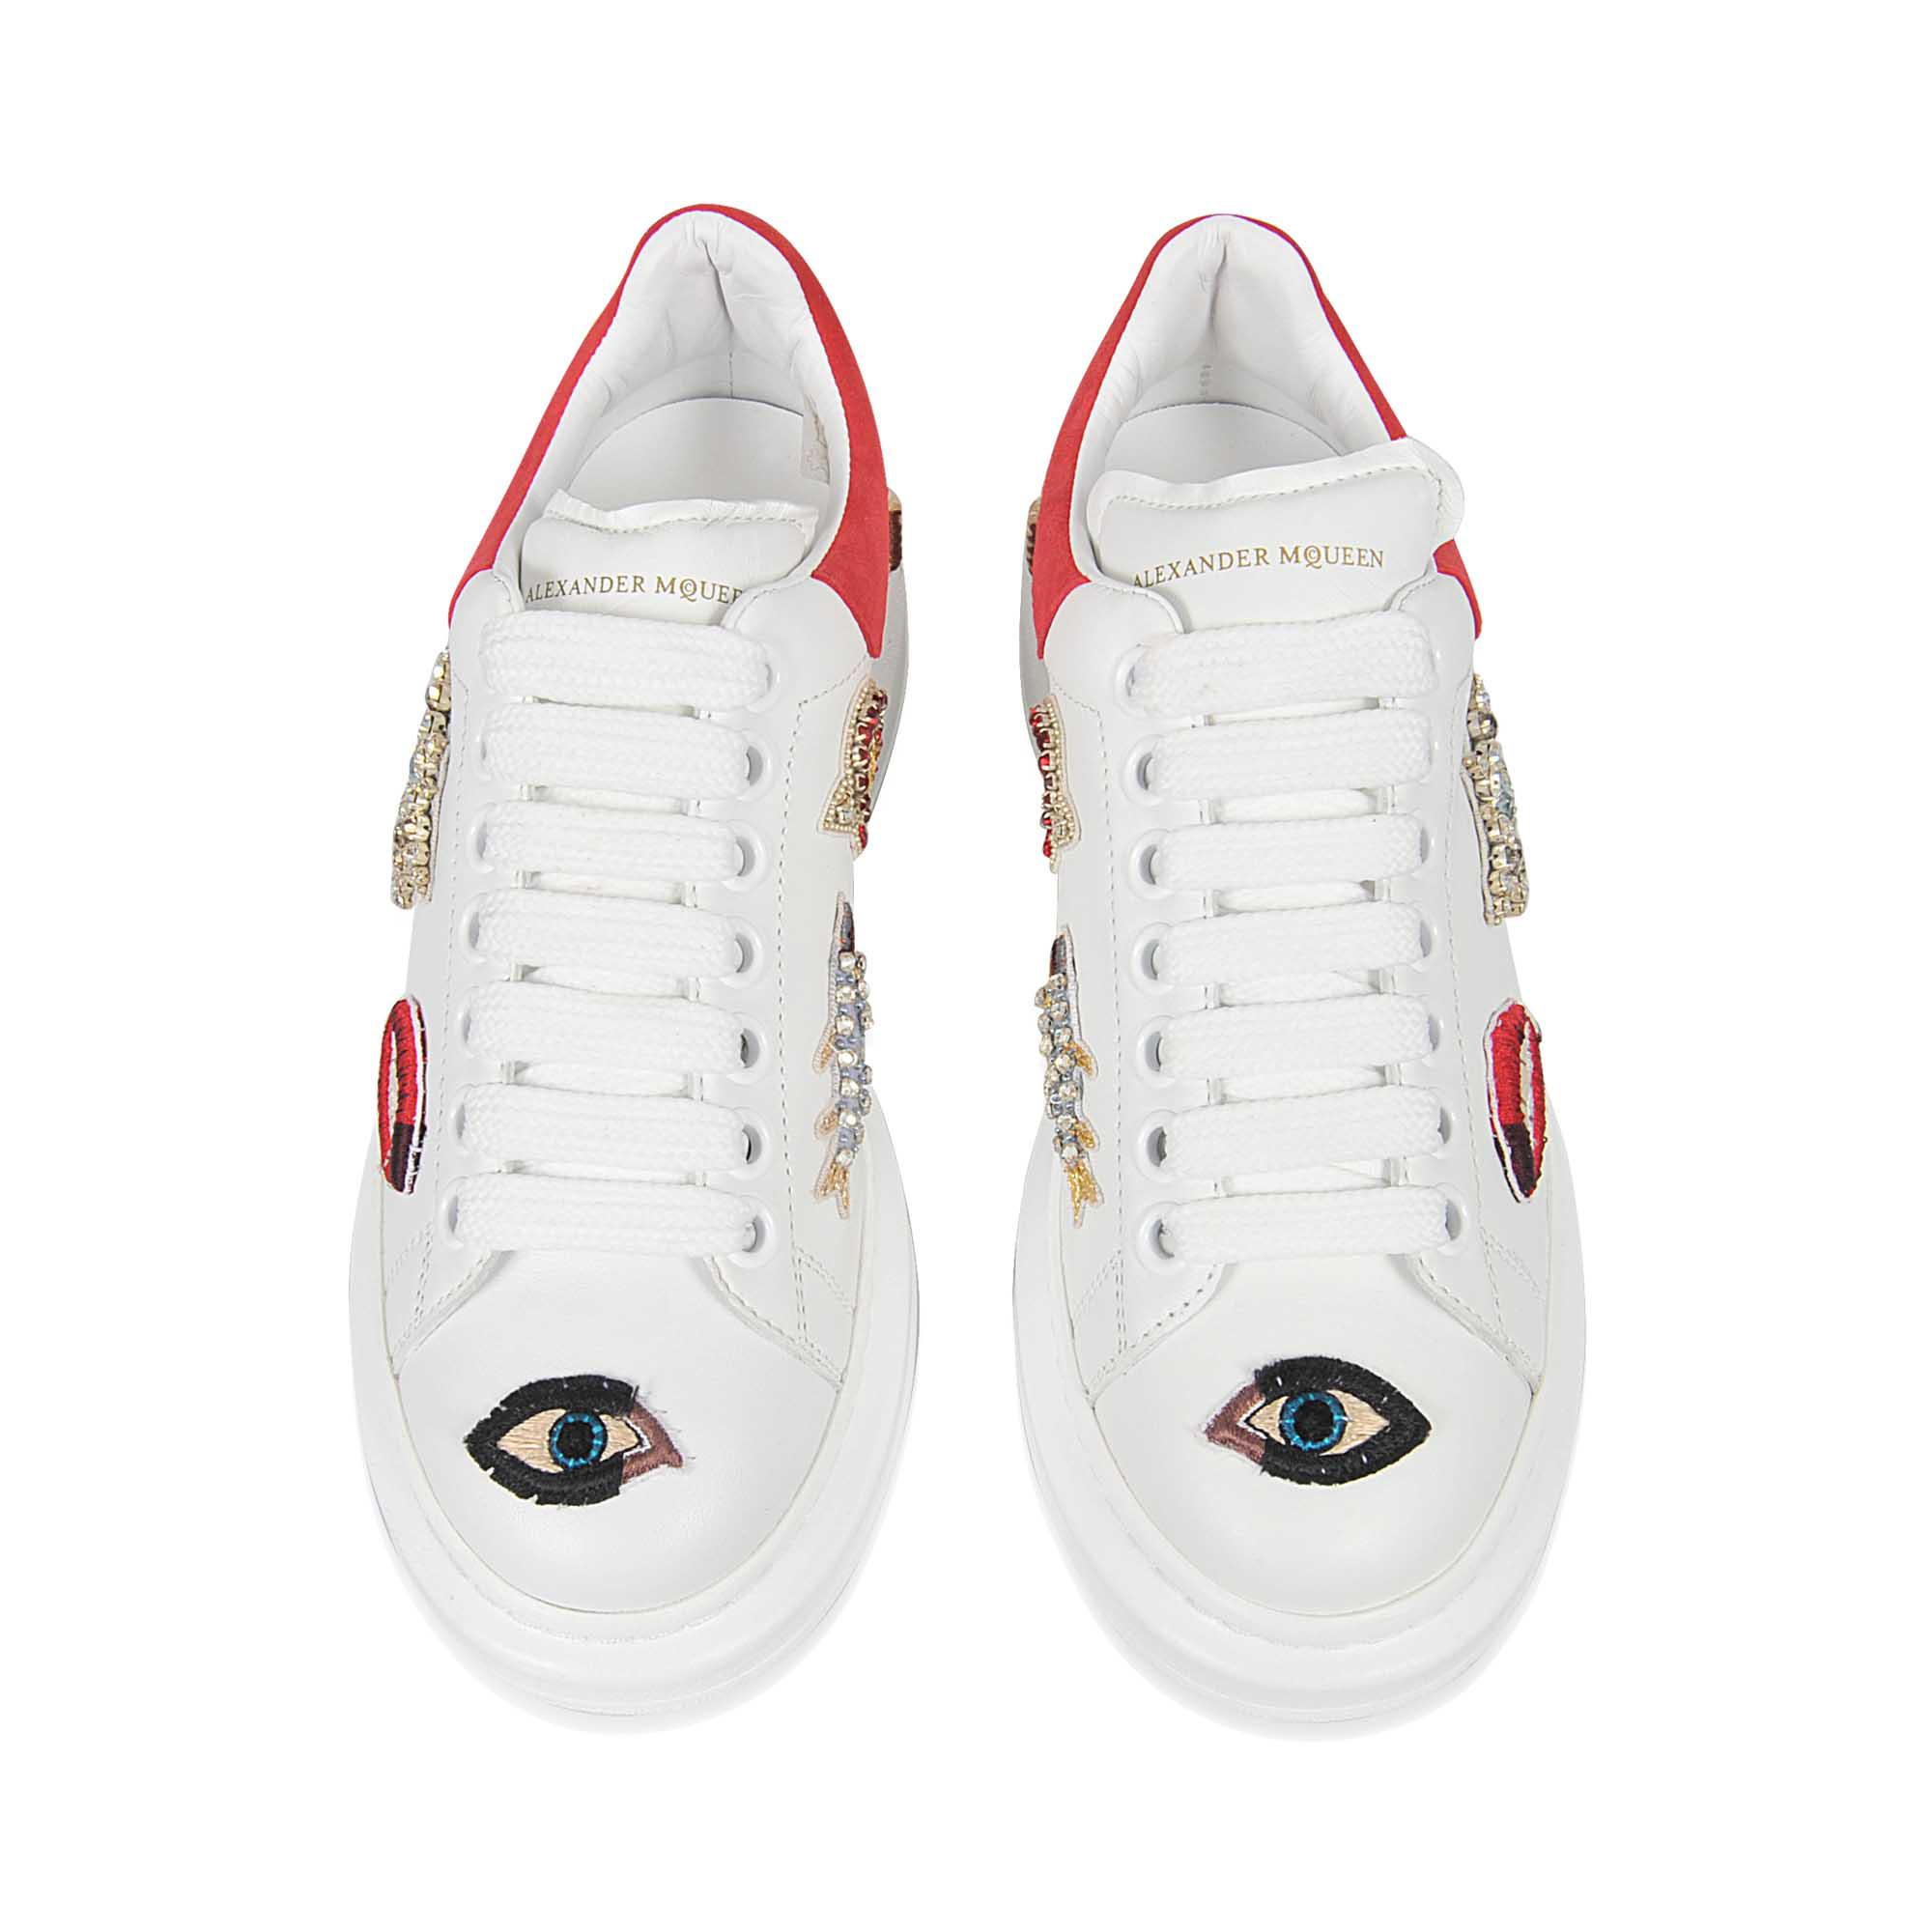 Alexander McQueen Charm's Embroidered Sneakers